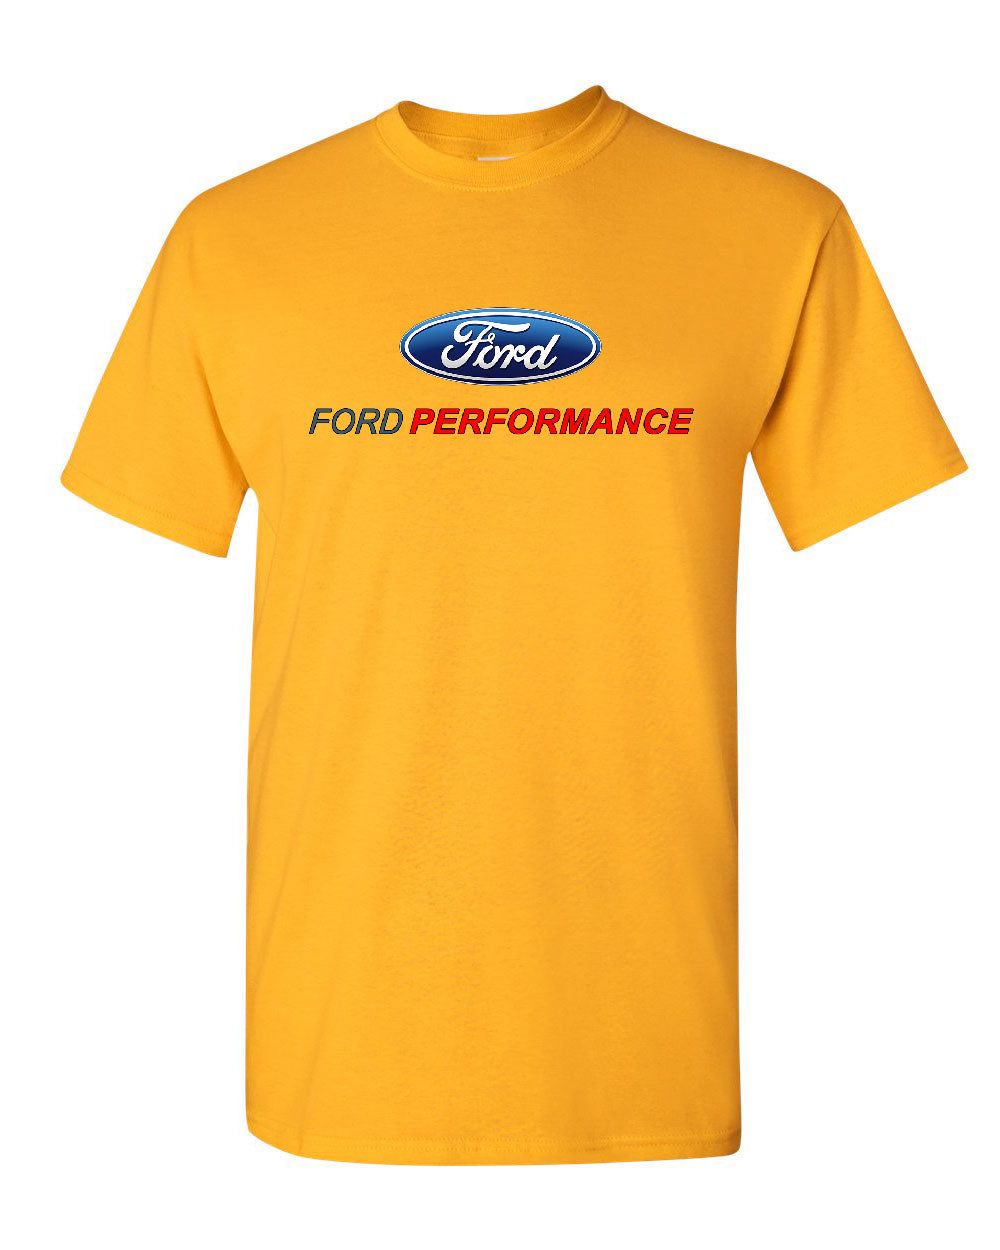 Ford Mustang Racing Stripe Design Blue Men S Size Tee: Ford Performance T-Shirt Ford Mustang GT ST Racing Tee